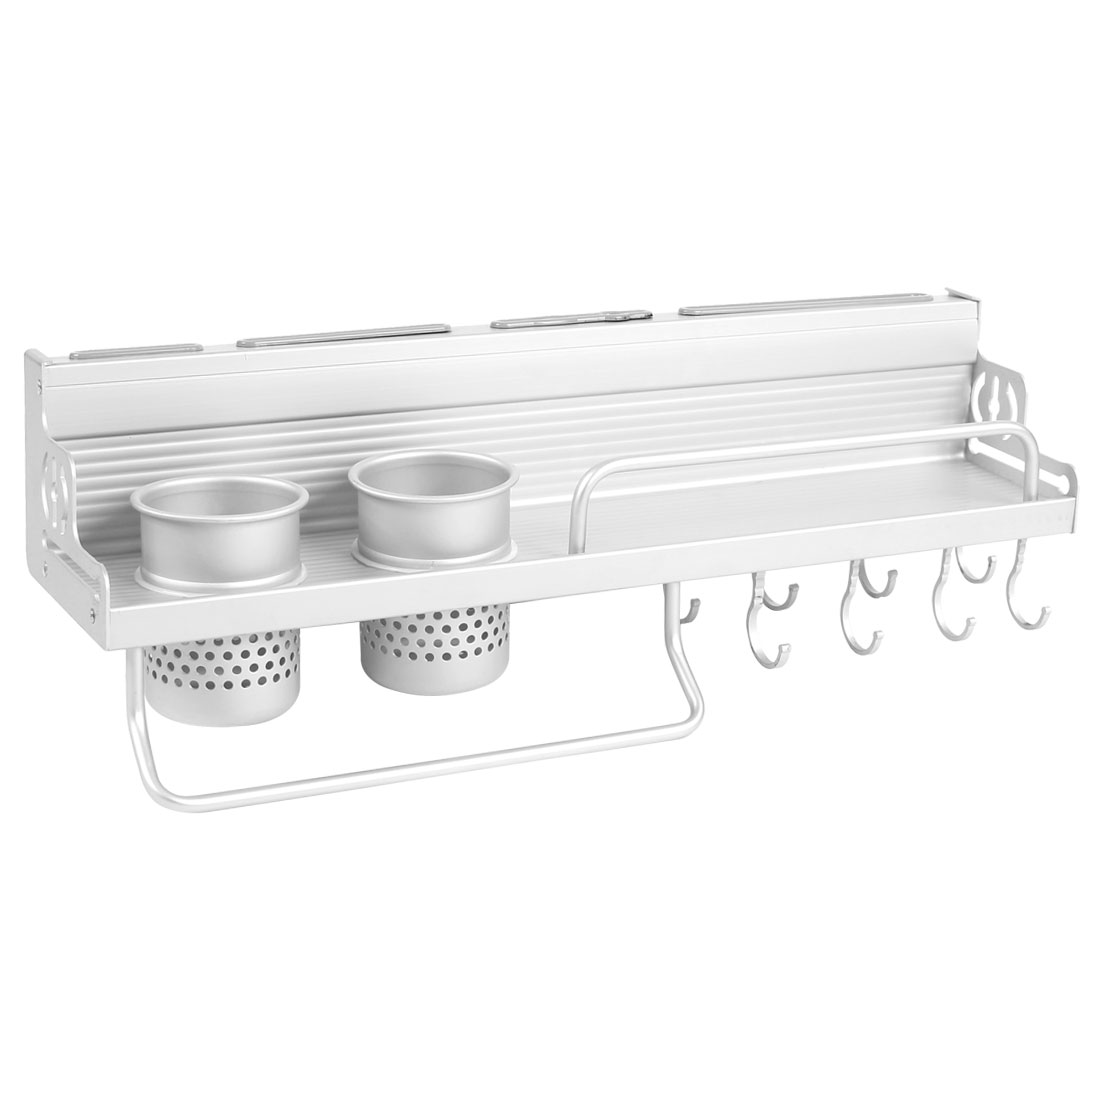 Home Kitchen Alumimum Wall Mounted Ladle Chopsticks Spice Rack Hanger 50cm Length